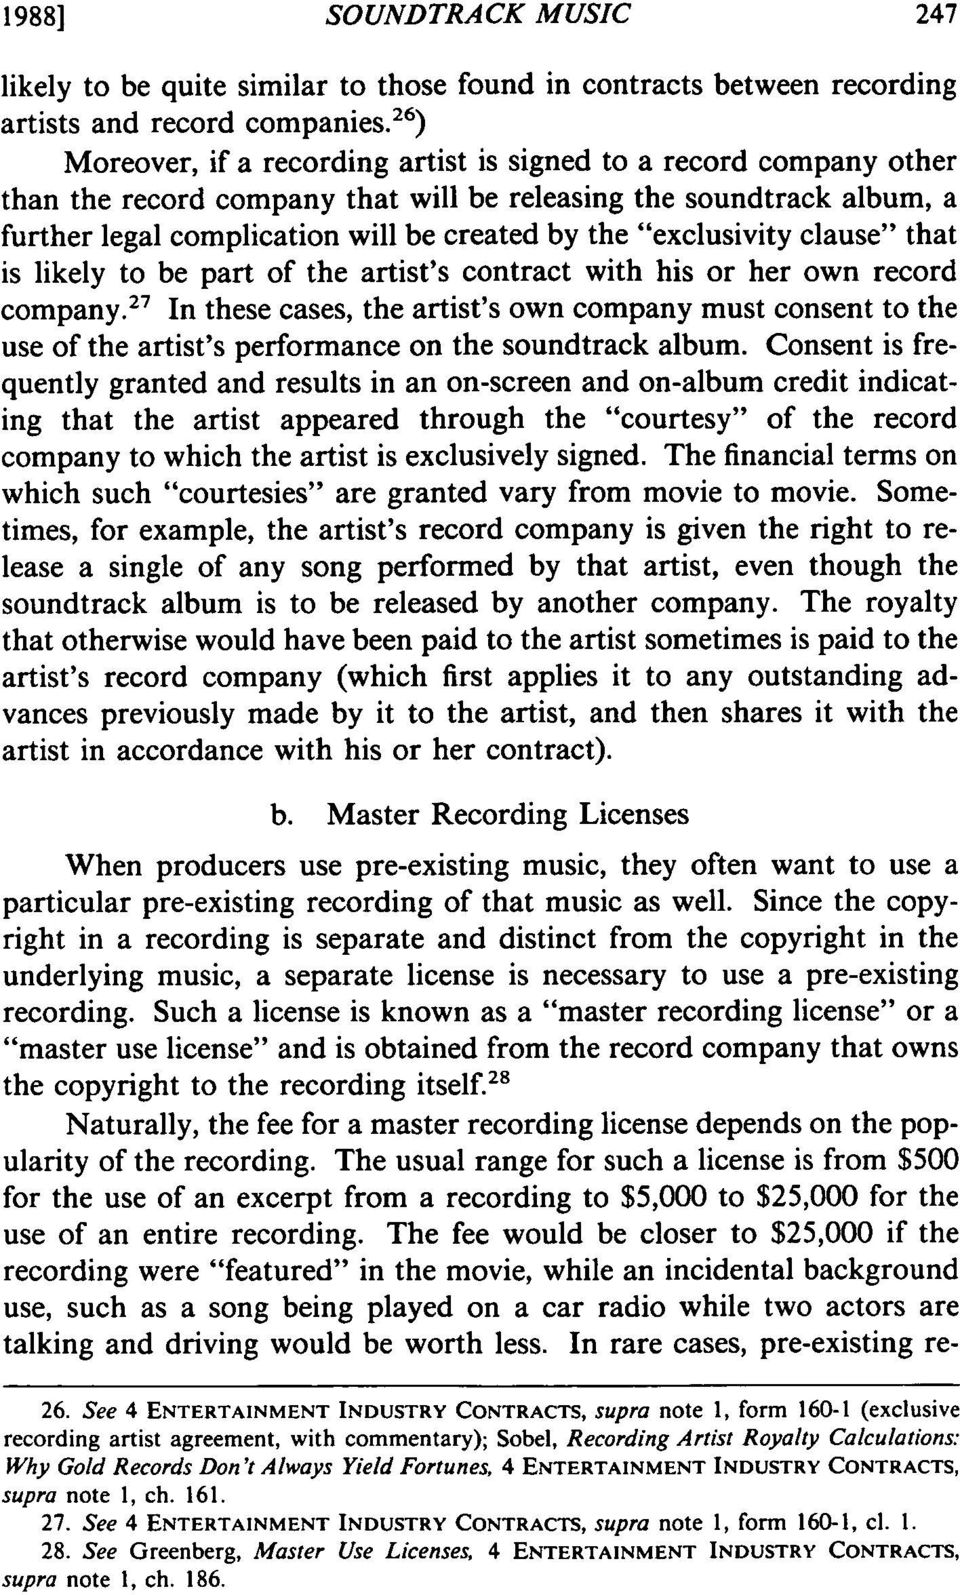 """exclusivity clause"" that is likely to be part of the artist's contract with his or her own record company."